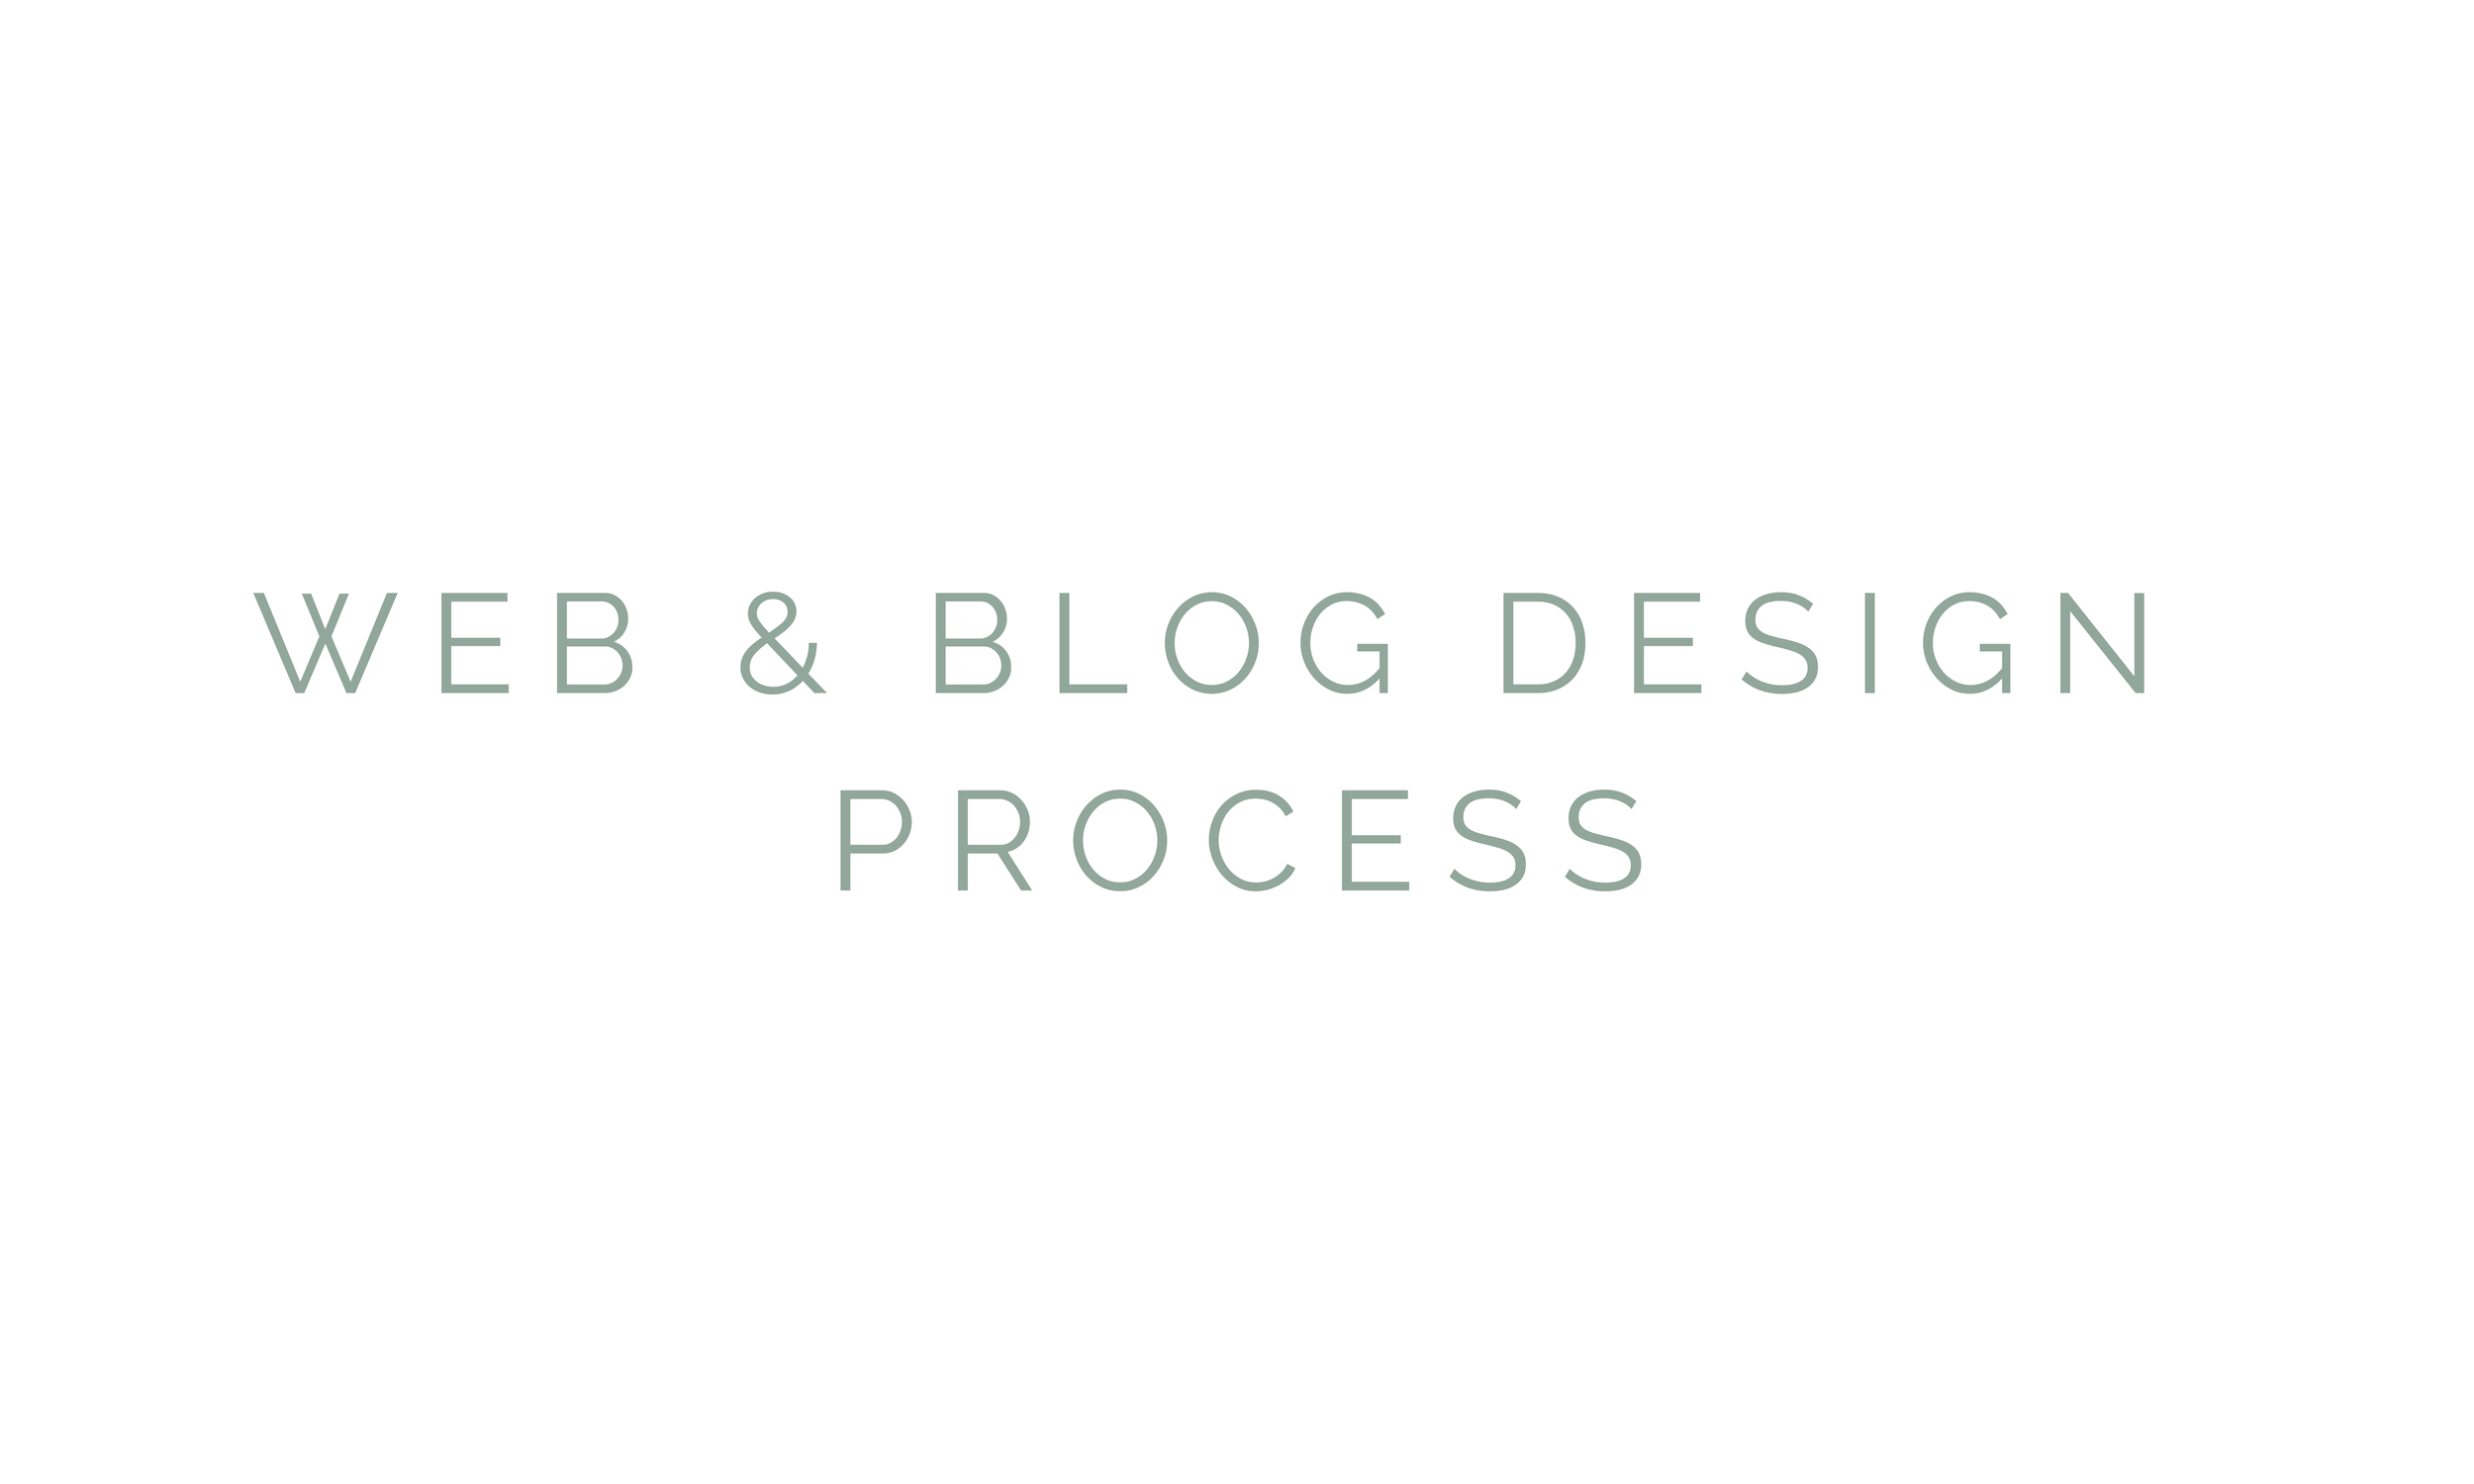 web & blog design